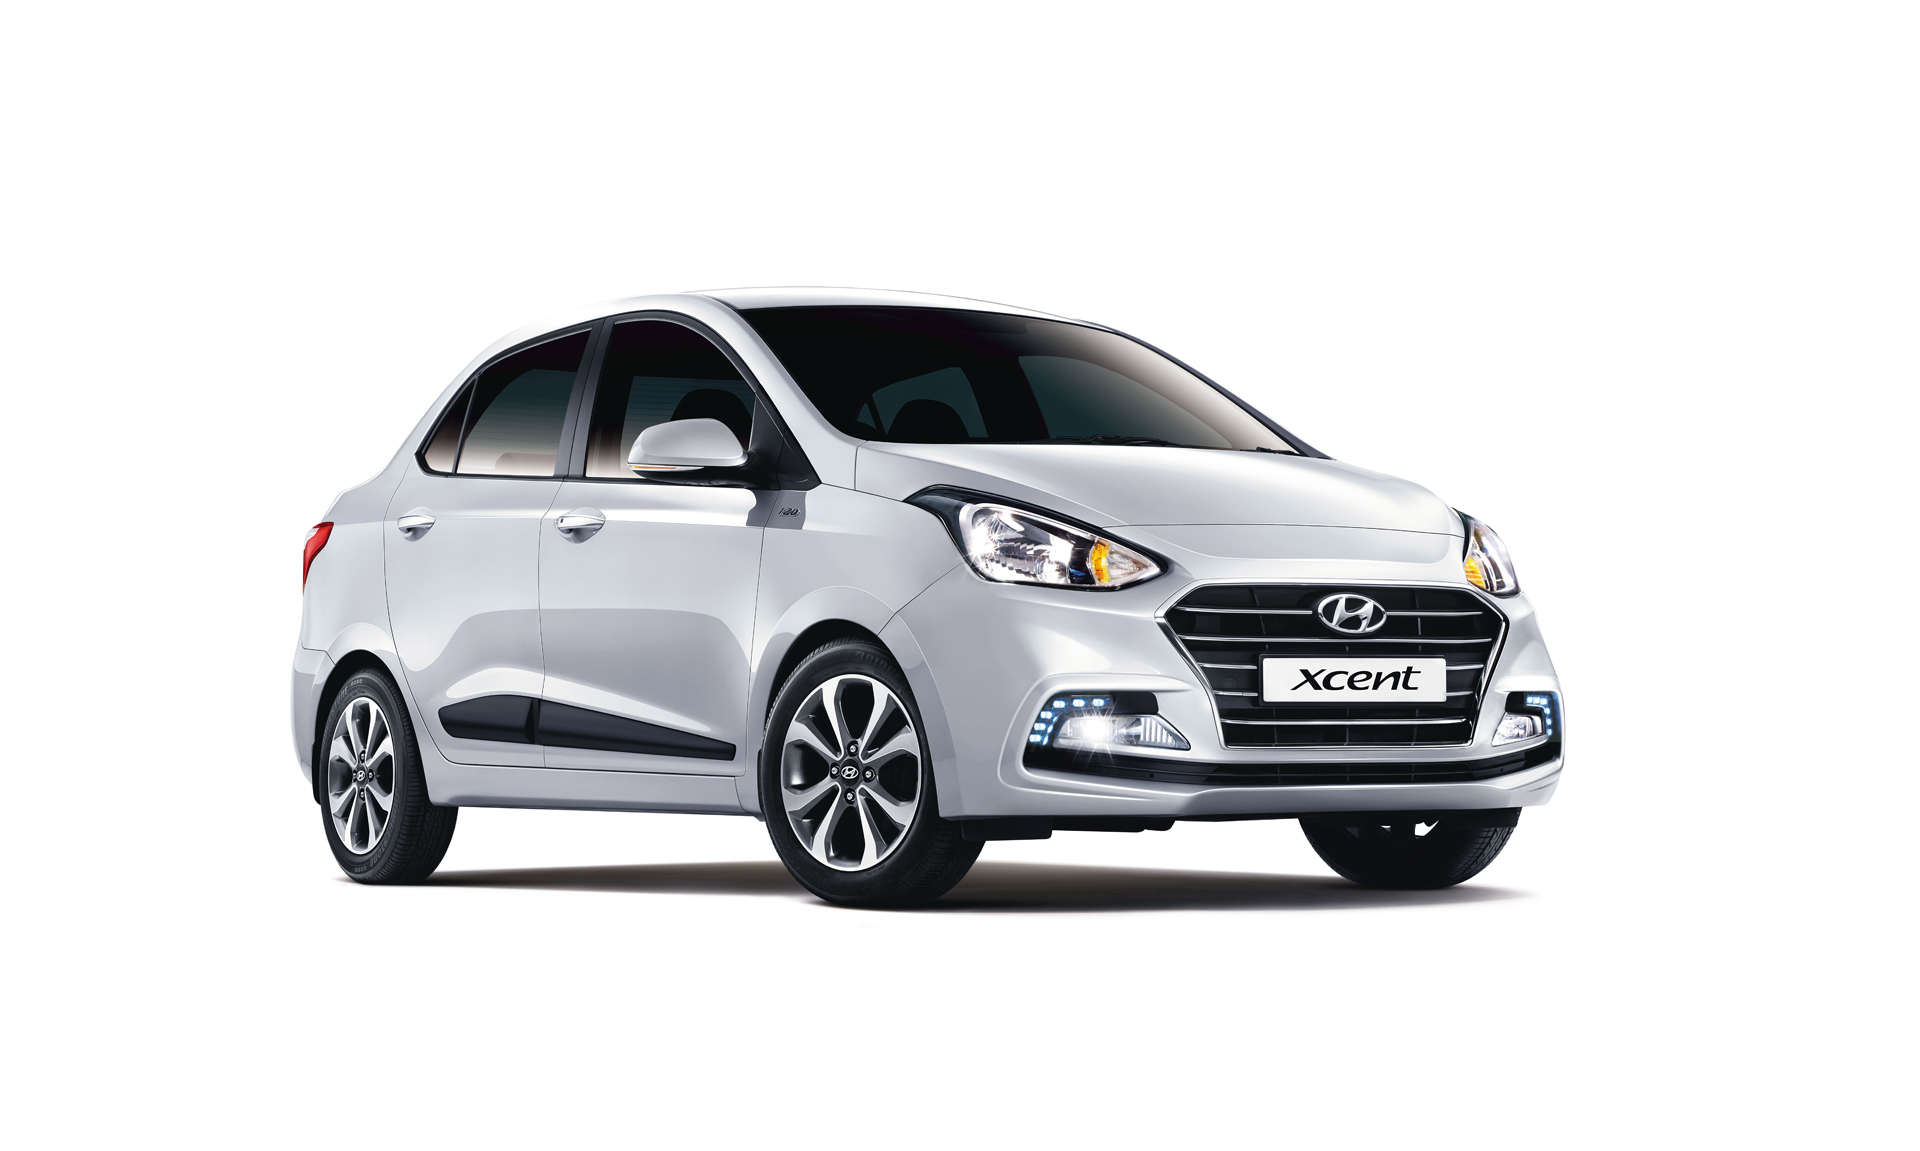 To further strengthen its hold over the compact sedan segment Hyundai launched the Xcent. Maruti Dzire and Tata Tigor are its competition